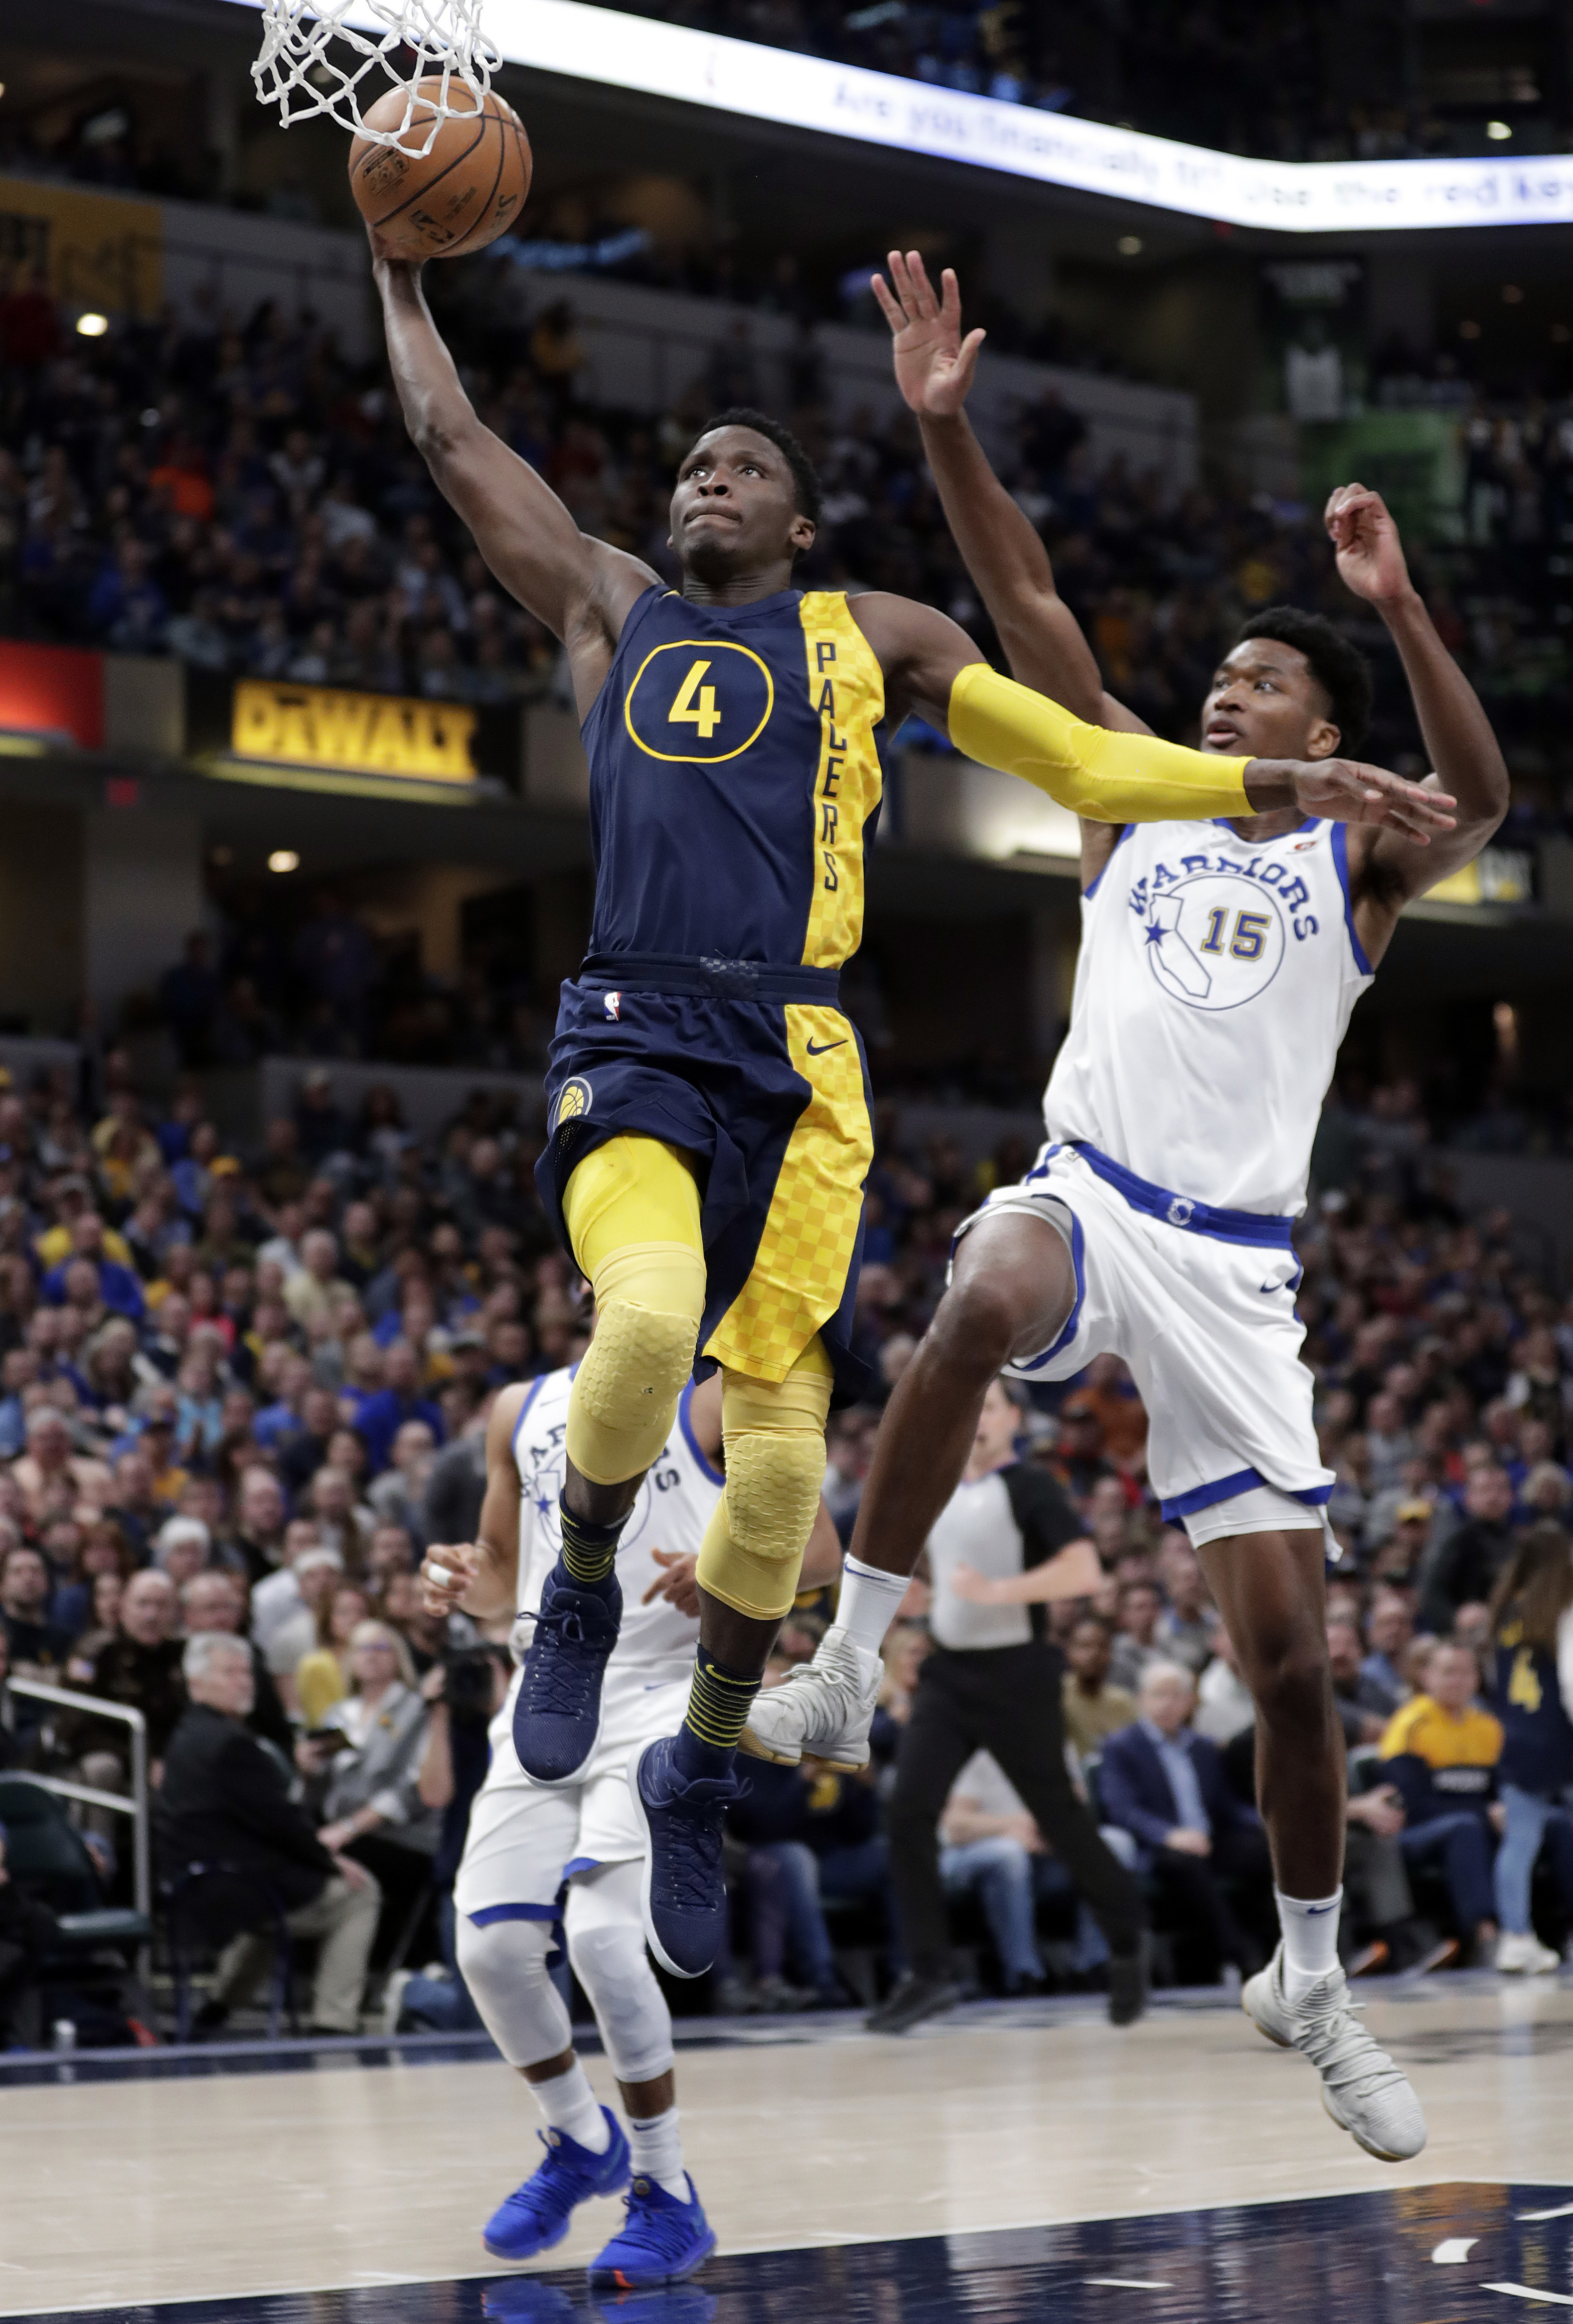 pacers vs warriors - photo #12